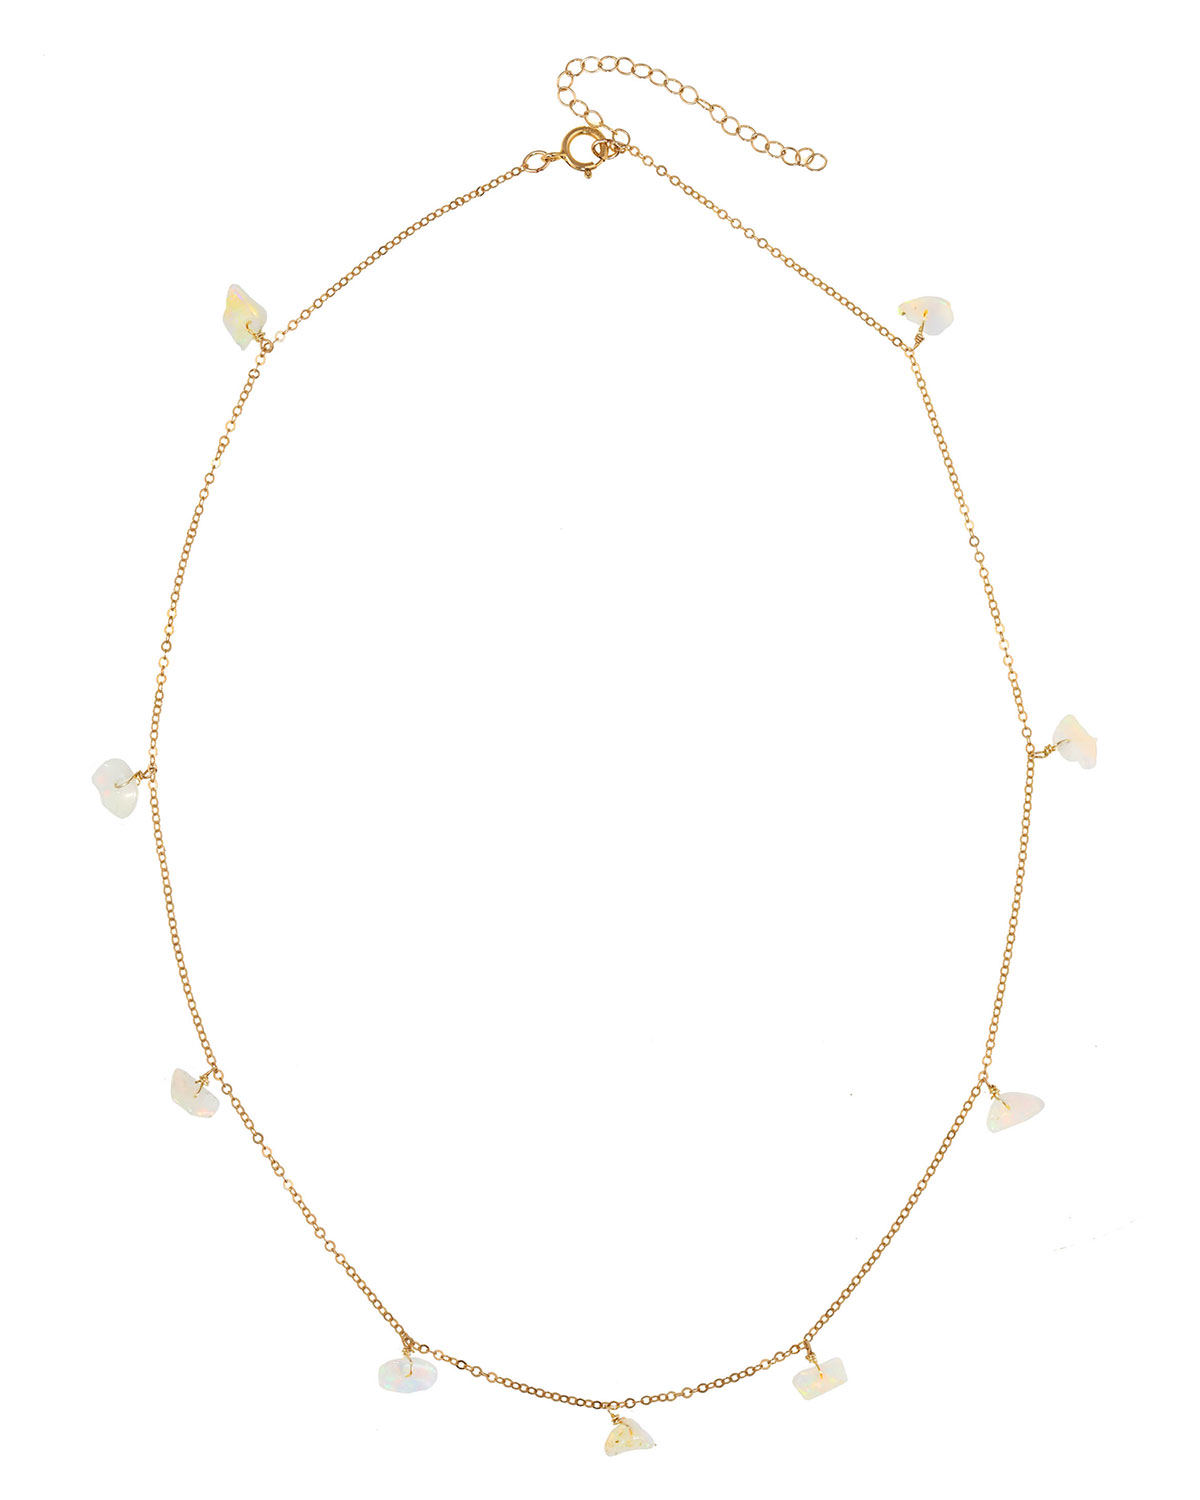 Malay Opal 14k Gold-Filled Necklace